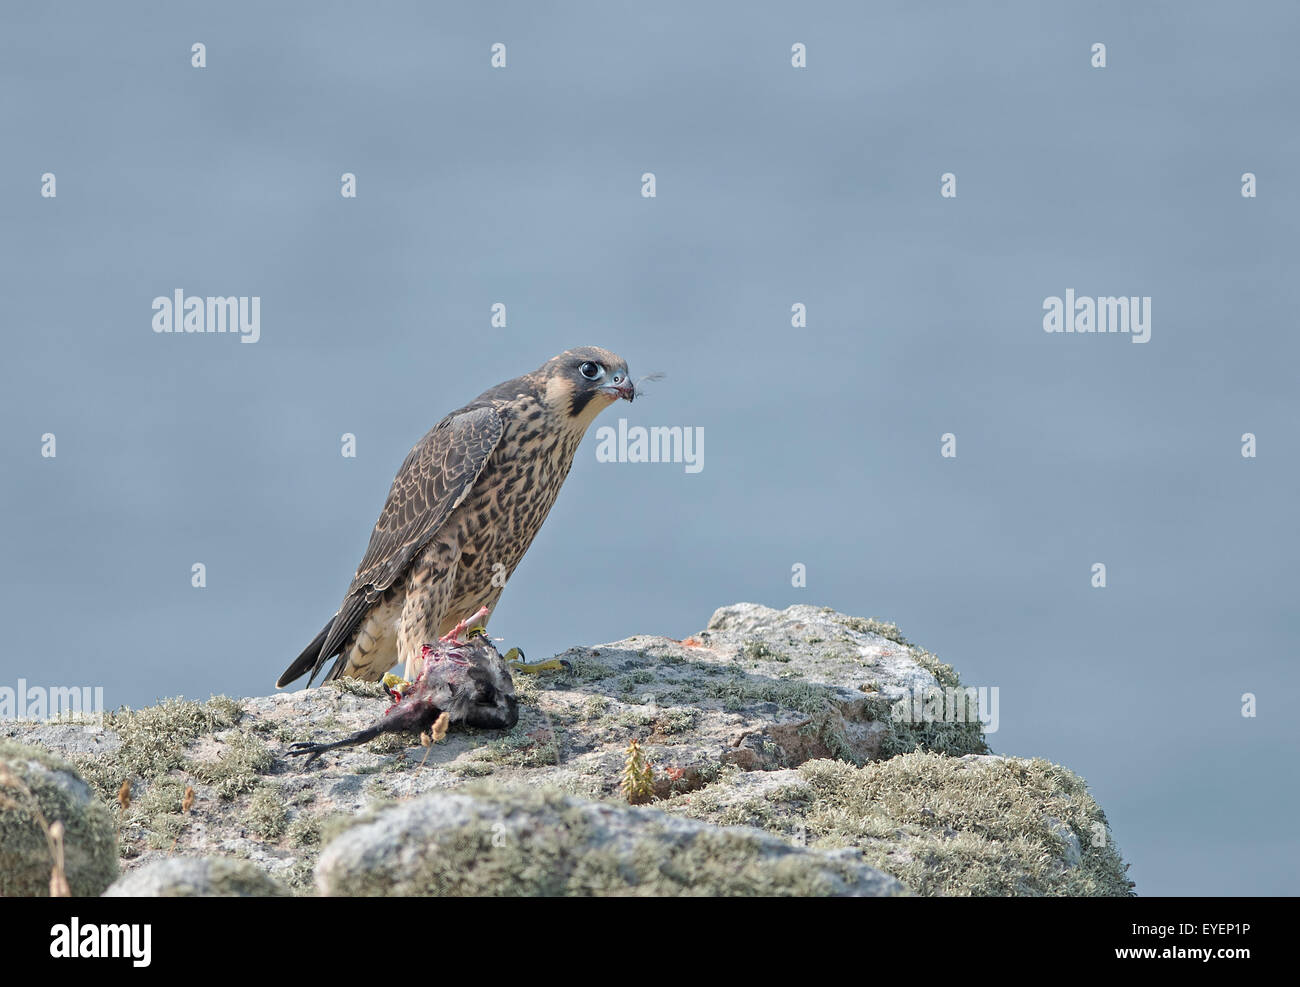 A juvenile Peregrine falcon with prey on the cliffs in Cornwall. - Stock Image